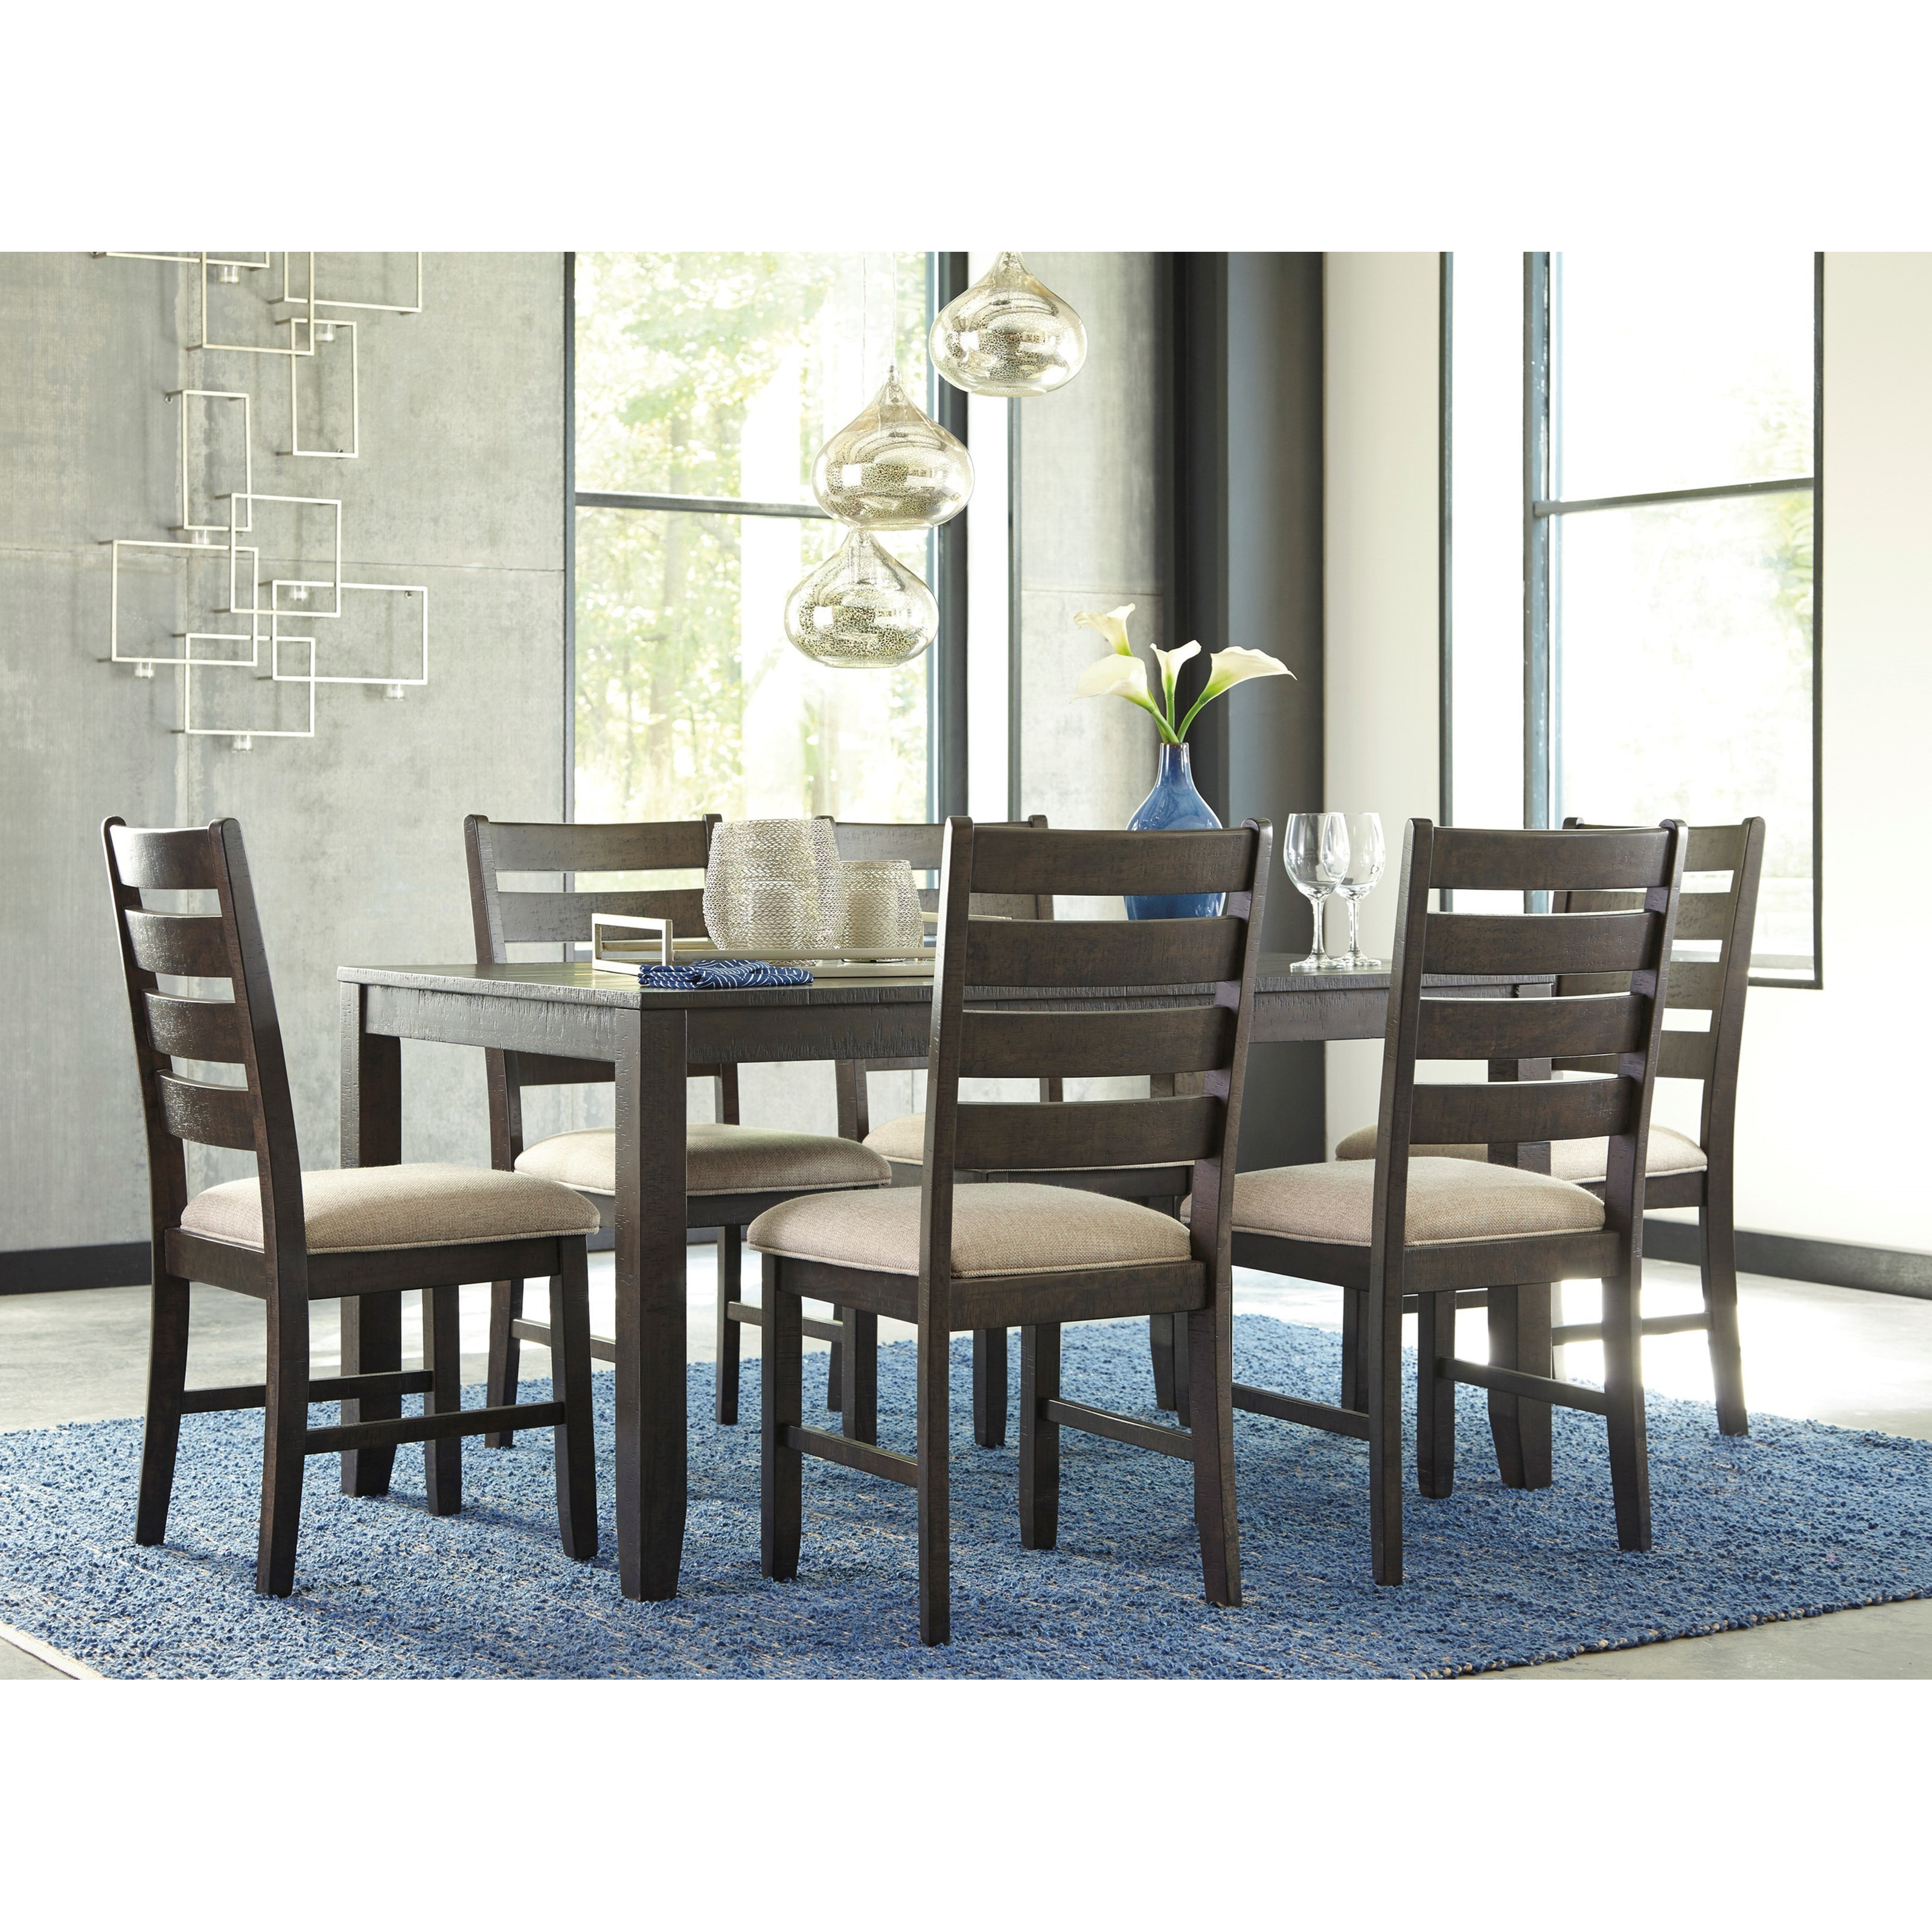 Ashley Furniture Dinette Set: Signature Design By Ashley Rokane D397-425 Contemporary 7